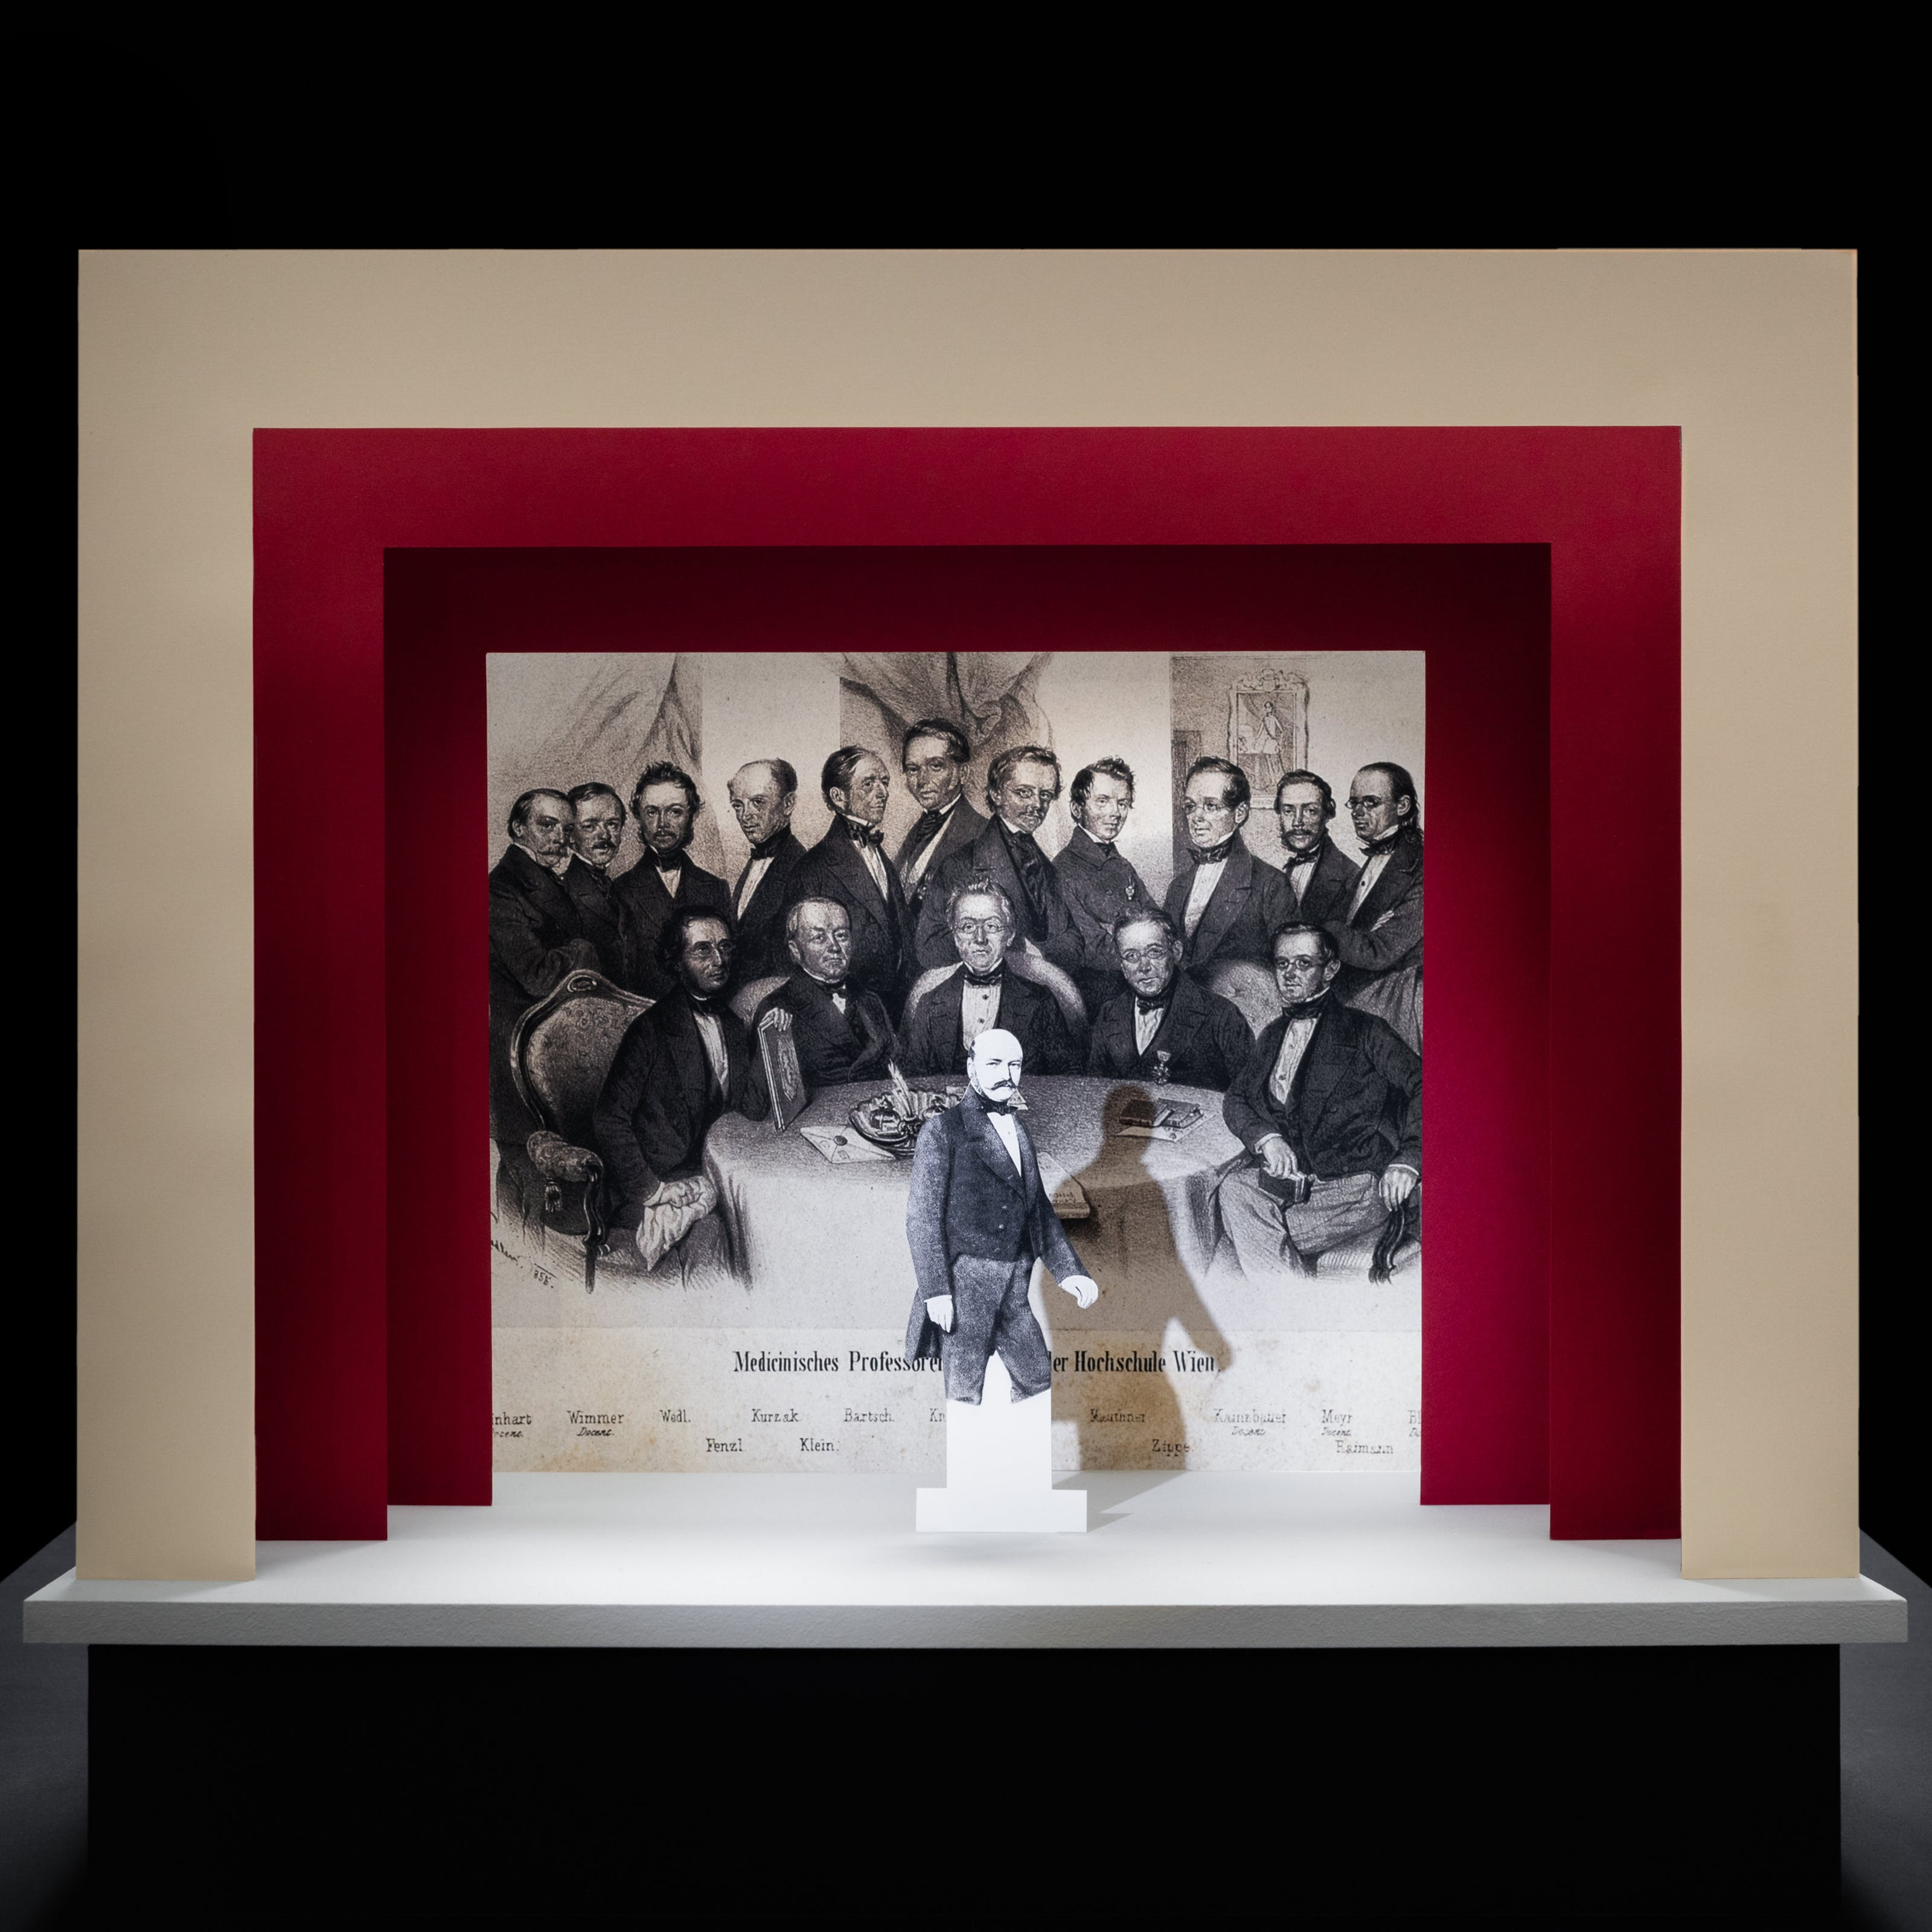 Photograph of a simple theatre stage set, made out of card. The background surrounding the stage is black. The stage floor is white and the framing of the stage is made out of 3 square edged arches, each one smaller than the other, receding backwards. The first arch is cream coloured and the other two are a red. On the stage is a small cut out illustration of a man with a moustache from the early 20th century. Behind him forming the backdrop is a black and white drawing of a group of suited men gathered around a table looking towards the viewer. Under these men are a list of their names.